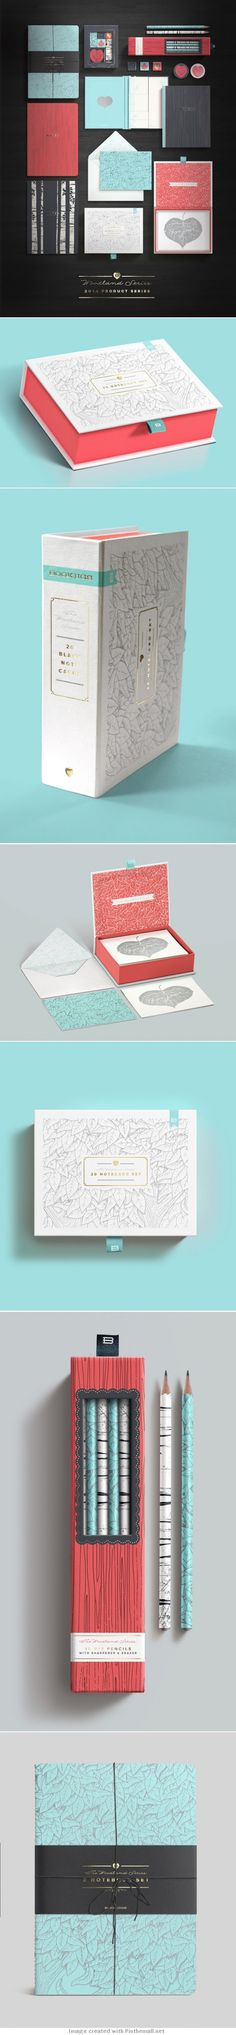 Bookjigs Woodland Product Line Packaging